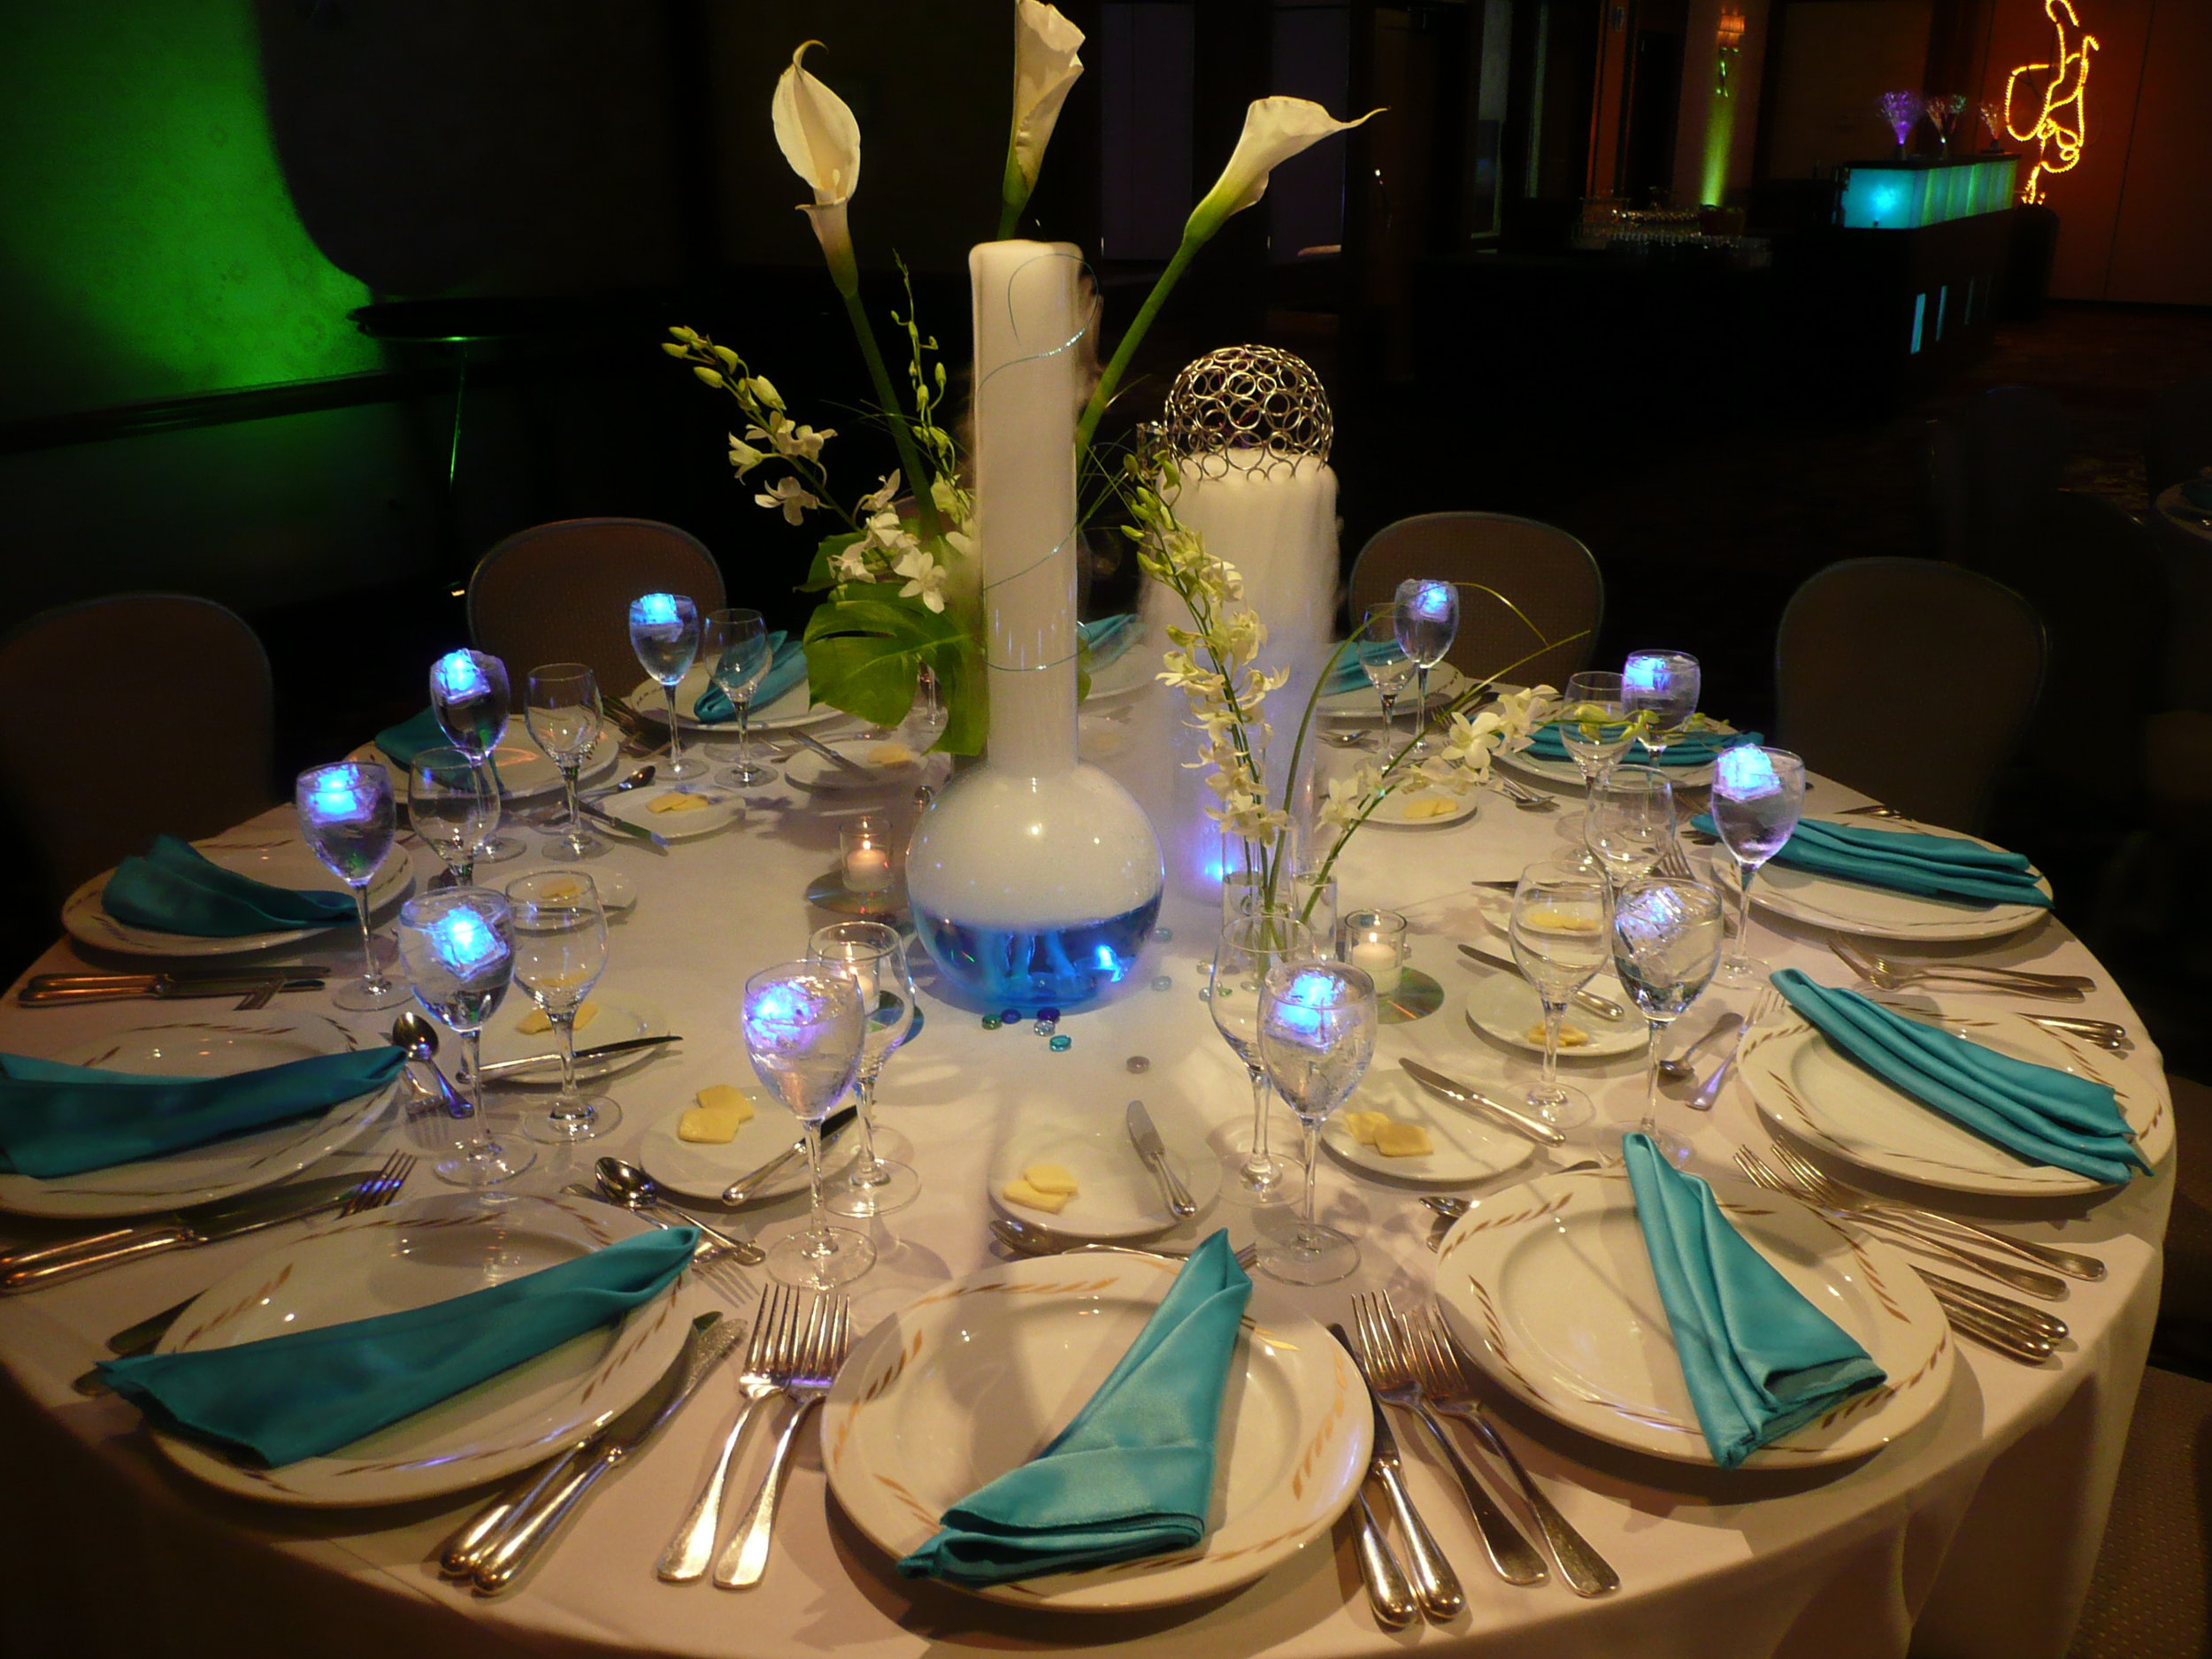 NJ+NY+PA+Bar+Mitzvah+bat+mitzvah+centerpieces+eggsotic+events.jpg